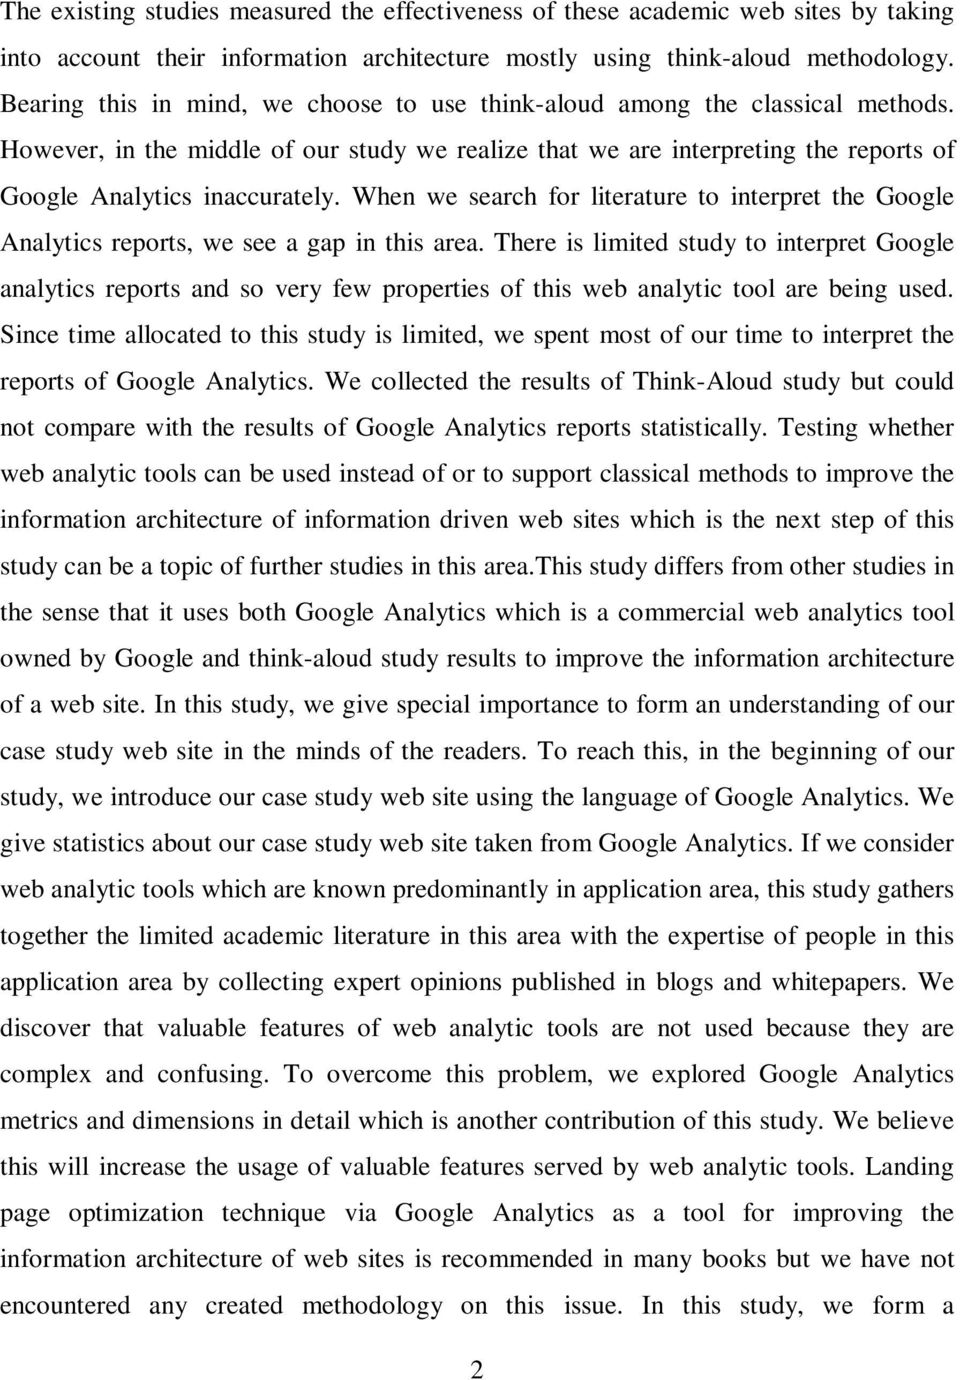 When we search for literature to interpret the Google Analytics reports, we see a gap in this area.